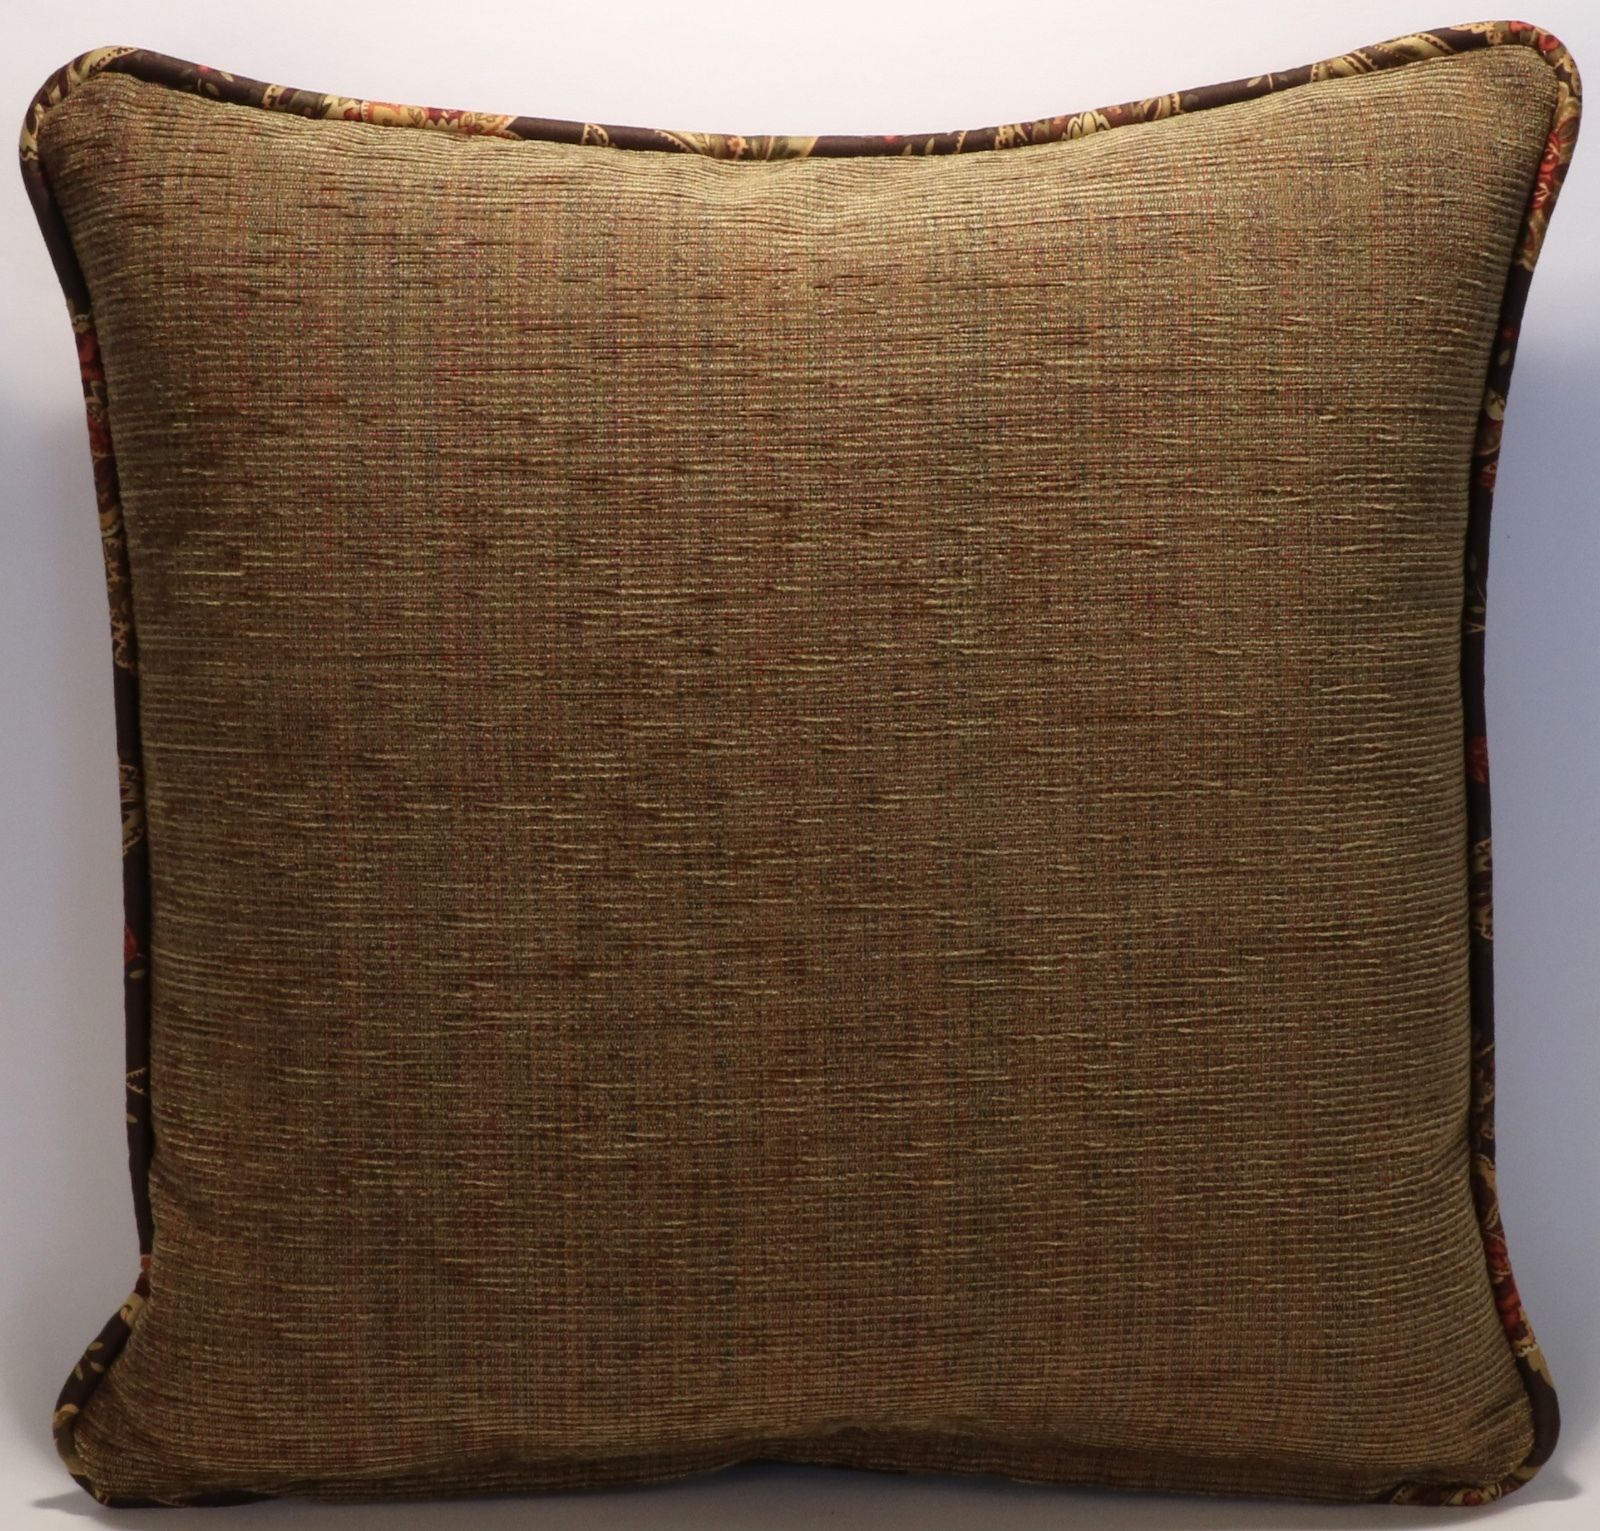 Bed pillows decorative - Decorative Pillows Target Gold Throw Pillows Decorative Pillows For Bed